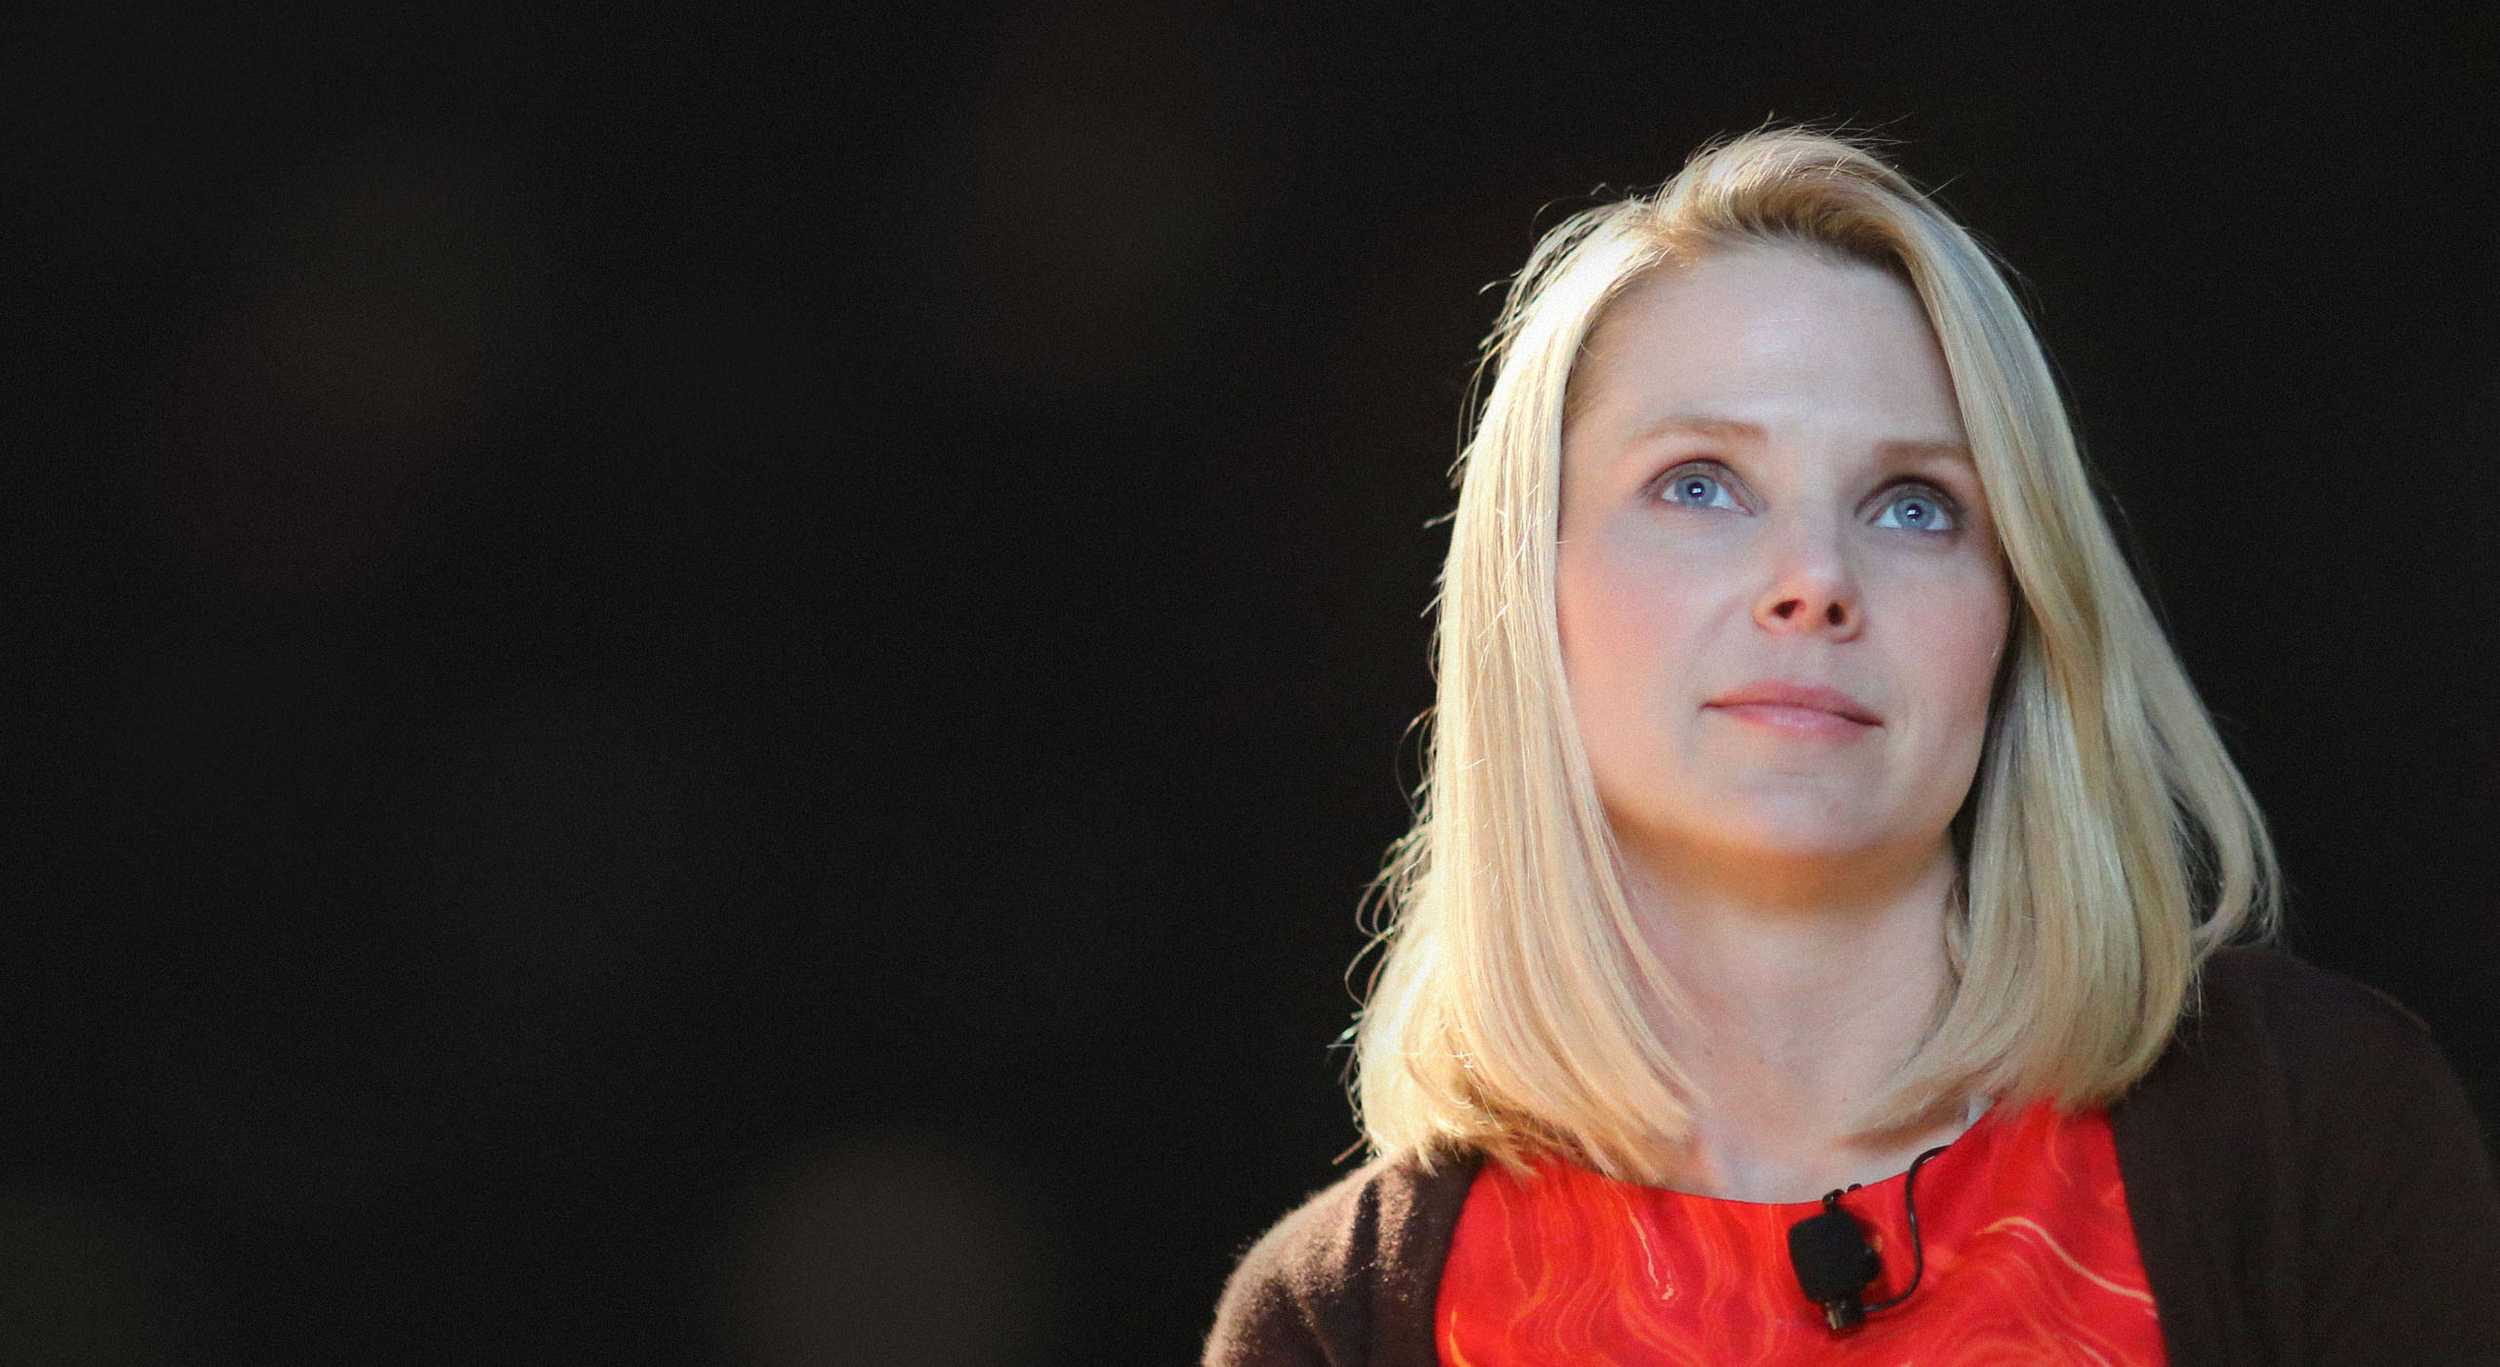 Marissa Mayer's photo